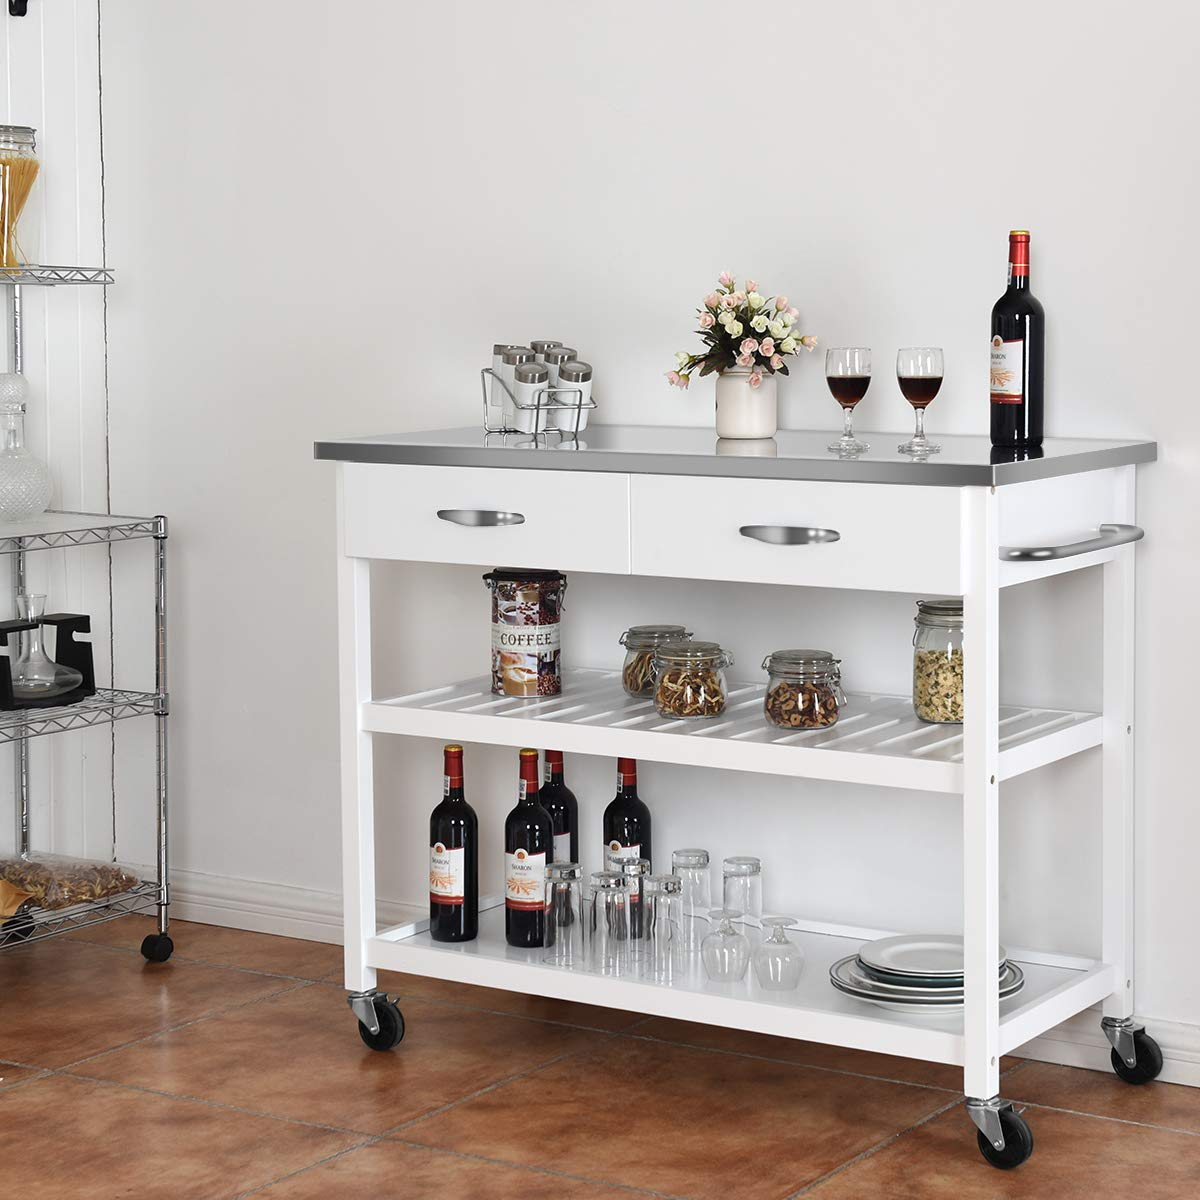 Giantex Kitchen Trolley Cart Rolling Island Cart Serving Cart Large Storage with Stainless Steel Countertop, Lockable Wheels, 2 Drawers and Shelf Utility Cart for Home and Restaurant, (White) by Giantex (Image #2)